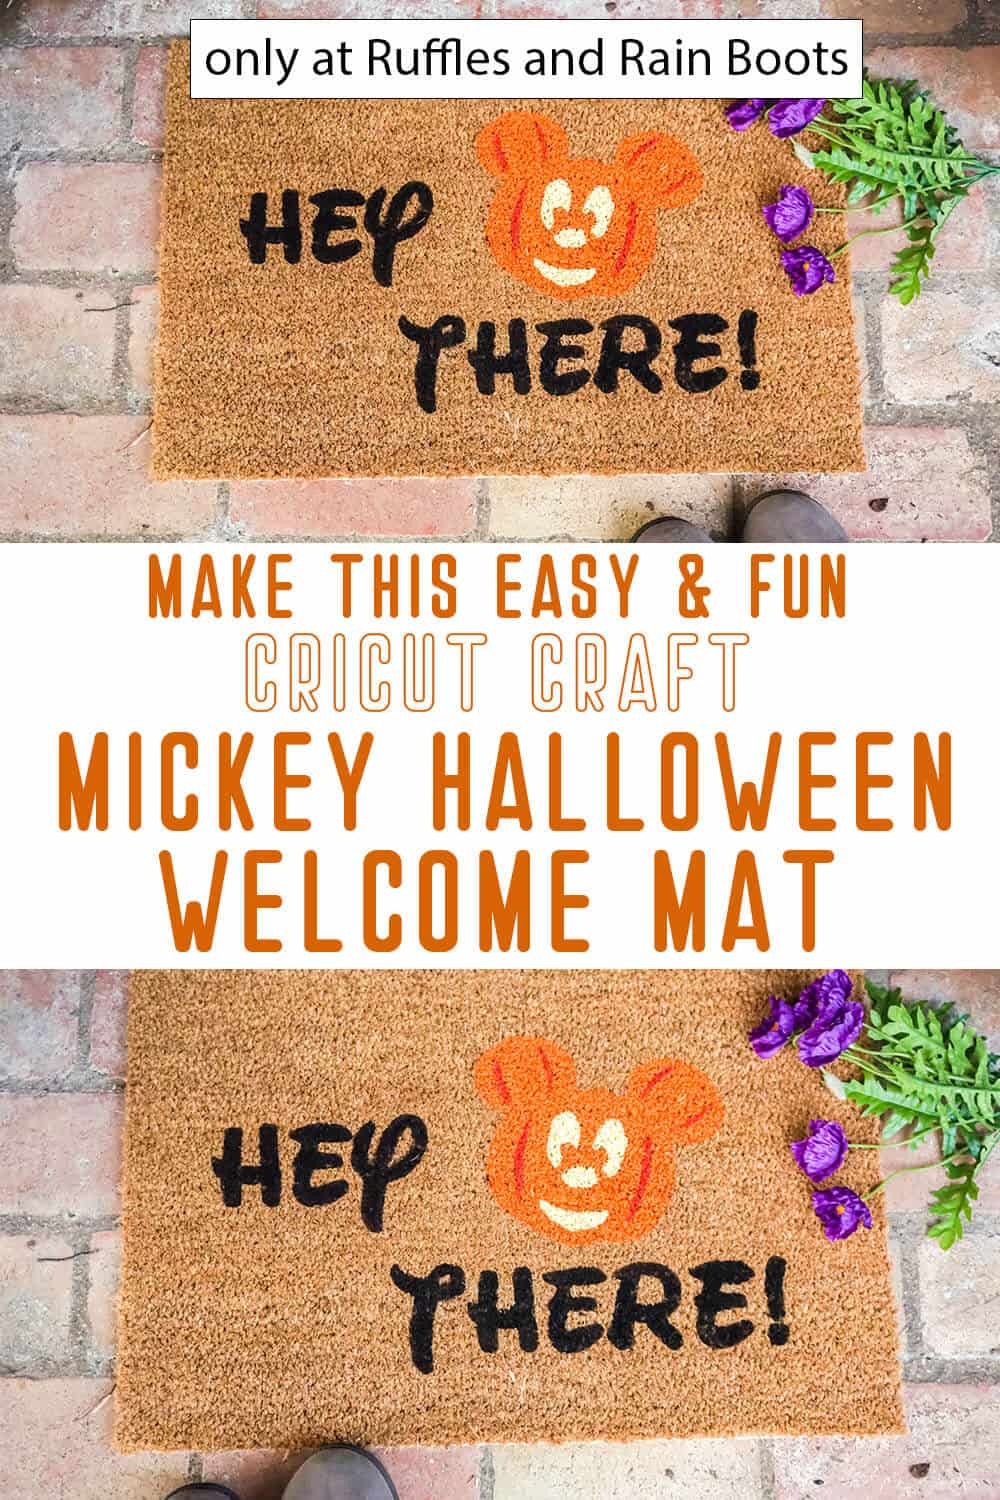 photo collage of mickey pumpkin doormat cricut craft with text which reads make this easy and fun cricut craft mickey halloween welcome mat